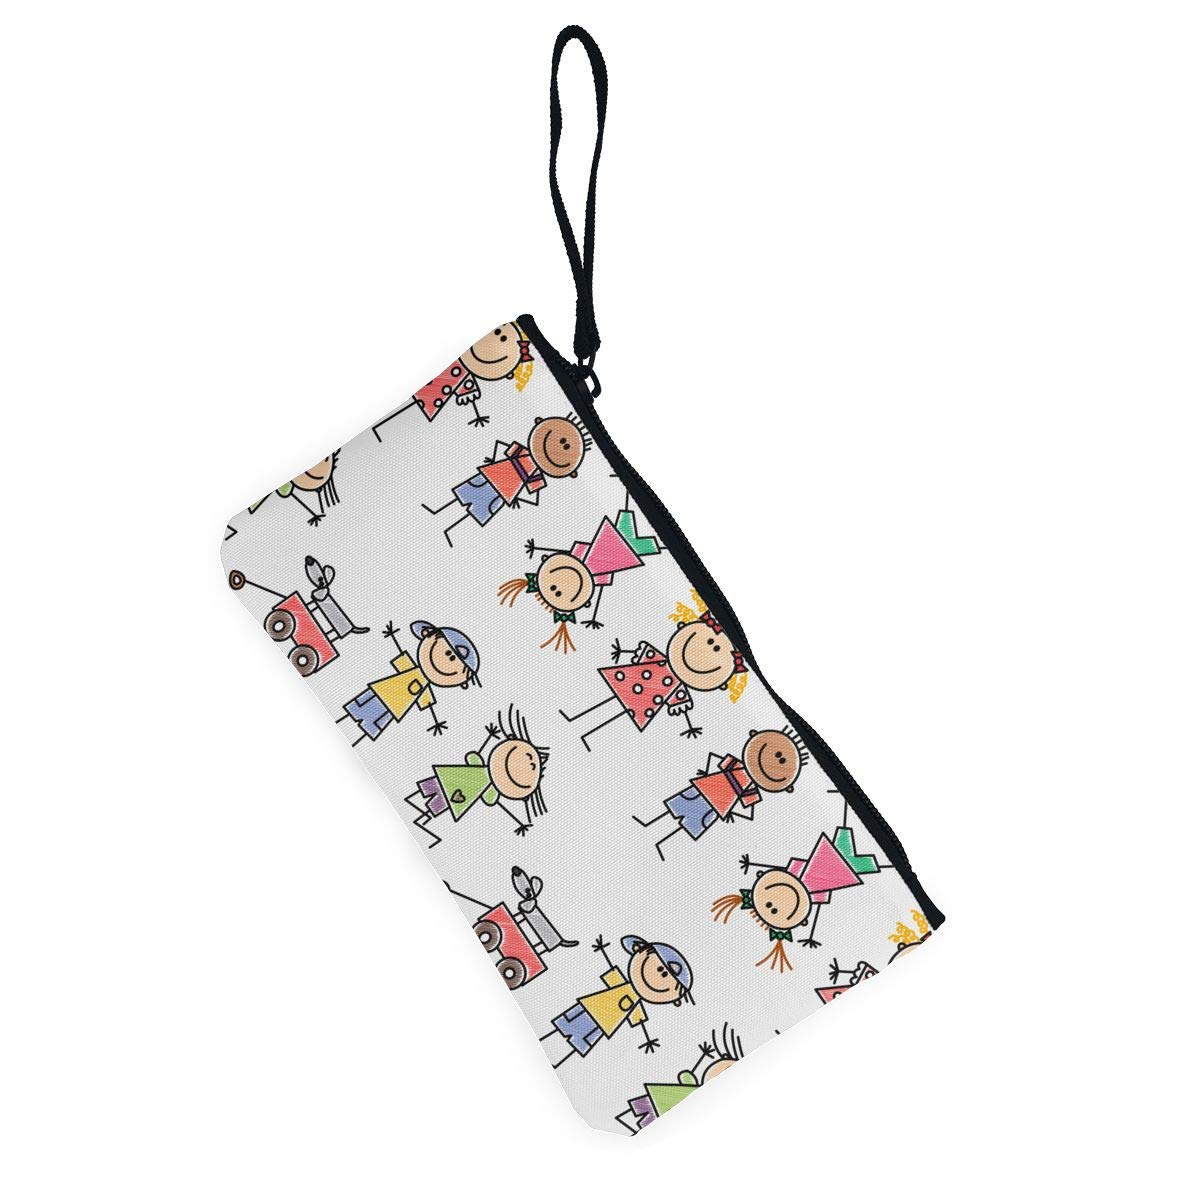 Make Up Bag,Cellphone Bag With Handle Kids Drawing Zipper Canvas Coin Purse Wallet